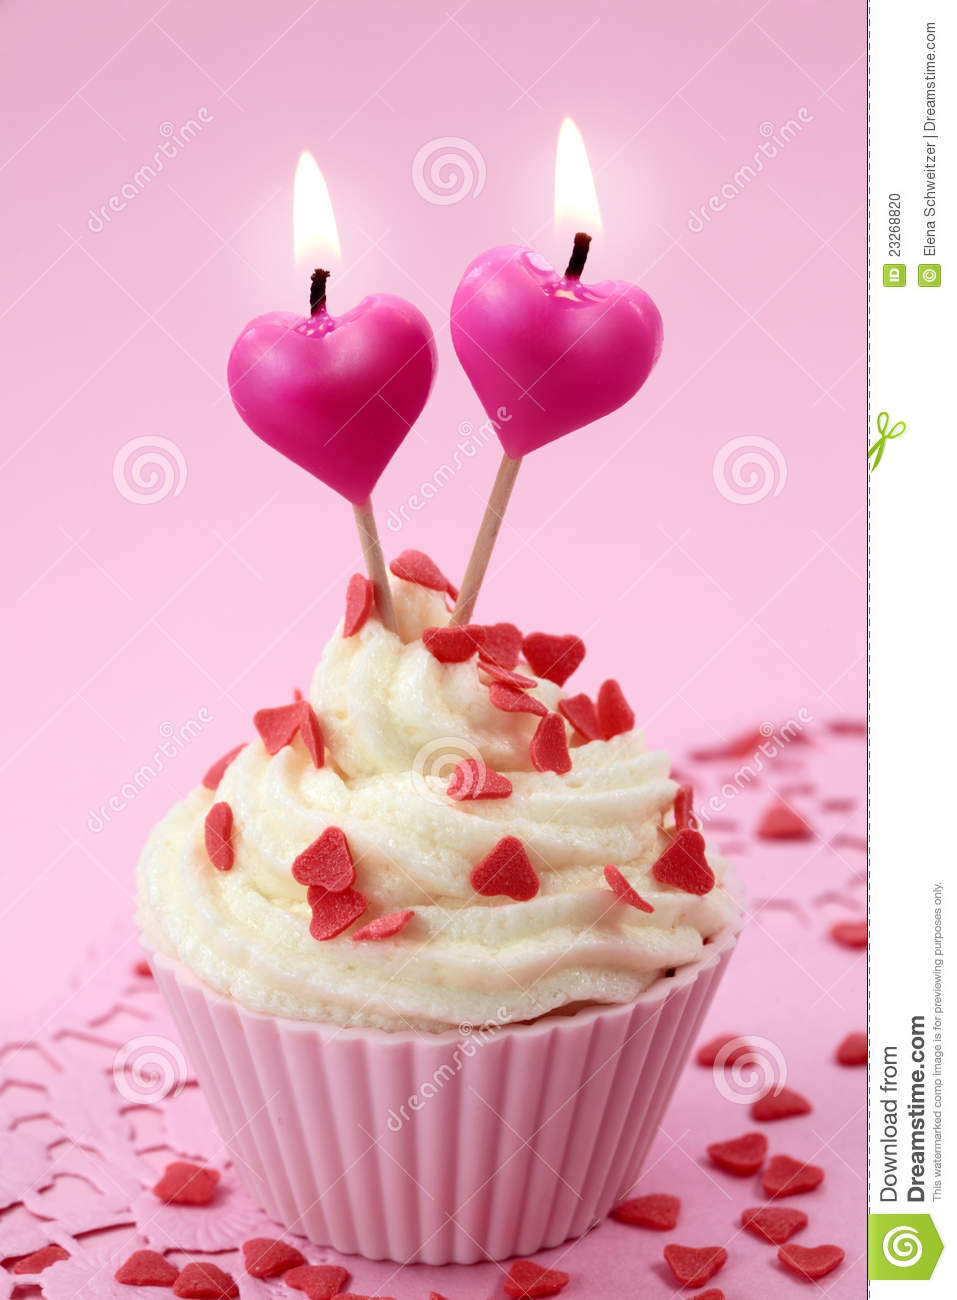 cup cake with heart candles stock photo image 23268820. Black Bedroom Furniture Sets. Home Design Ideas